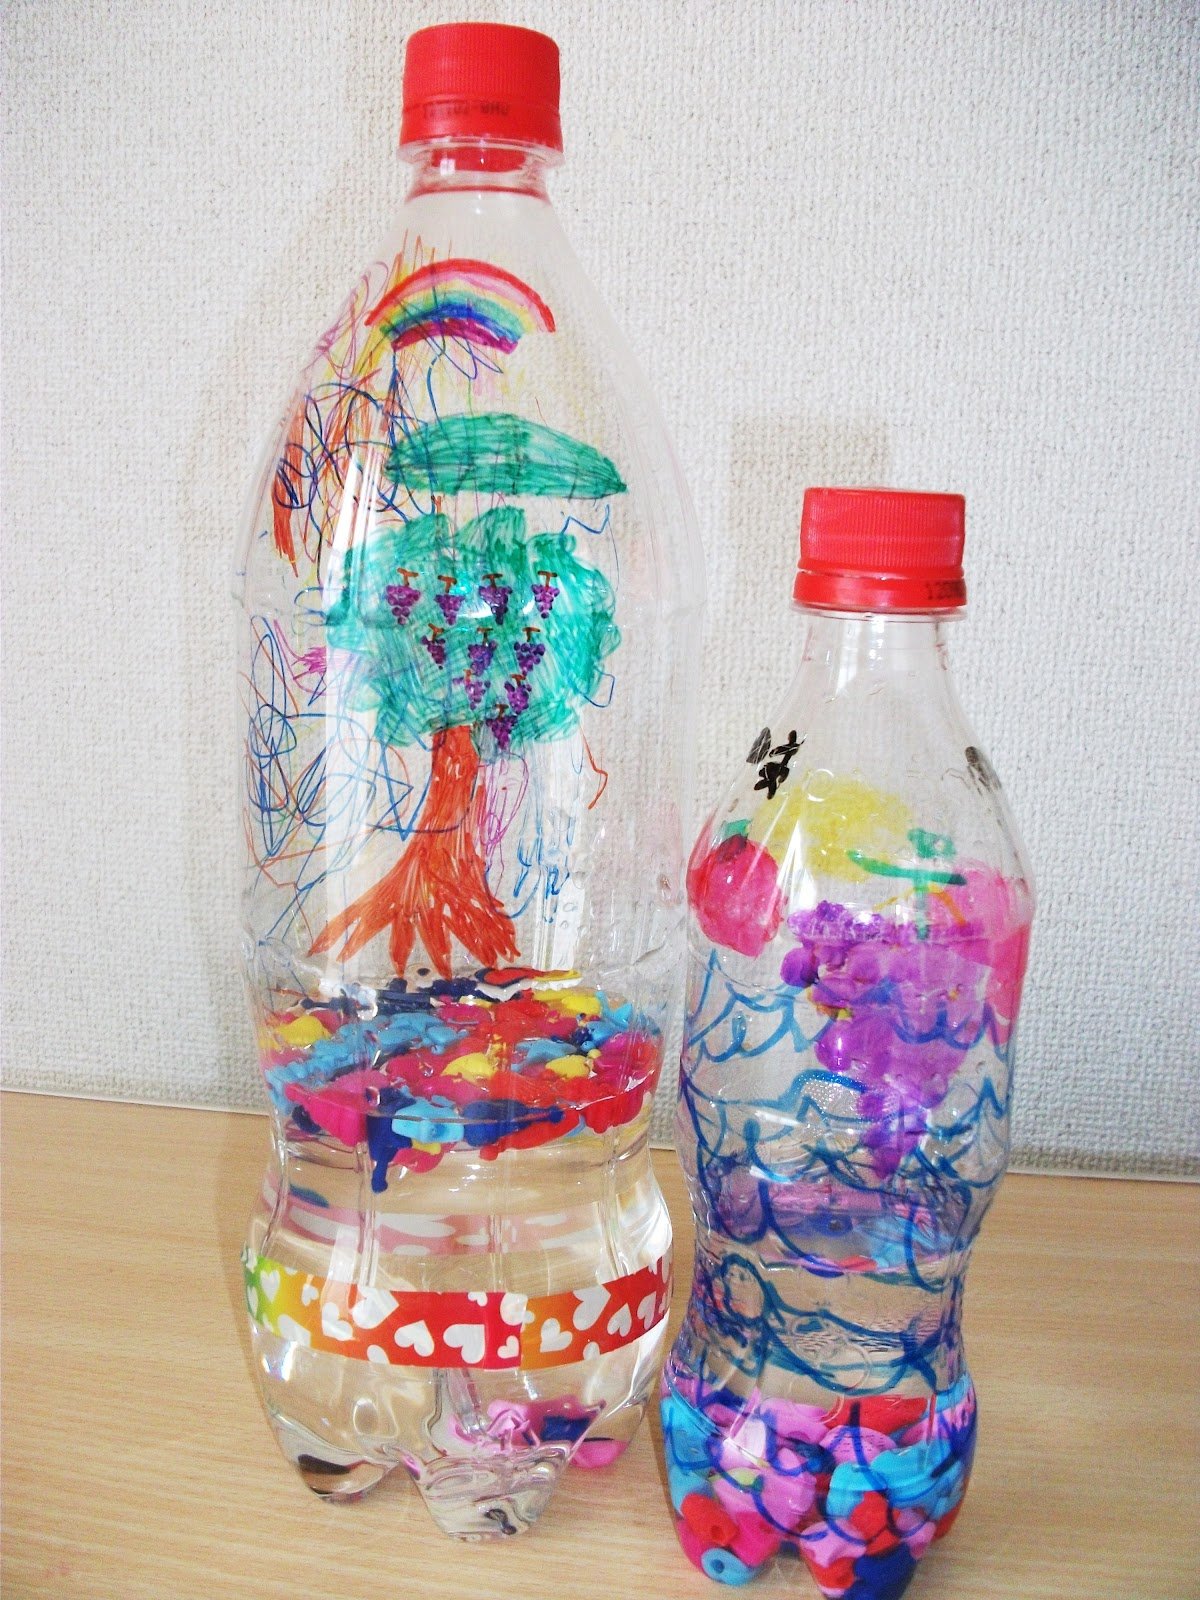 water bottle shaker craft preschool education for kids